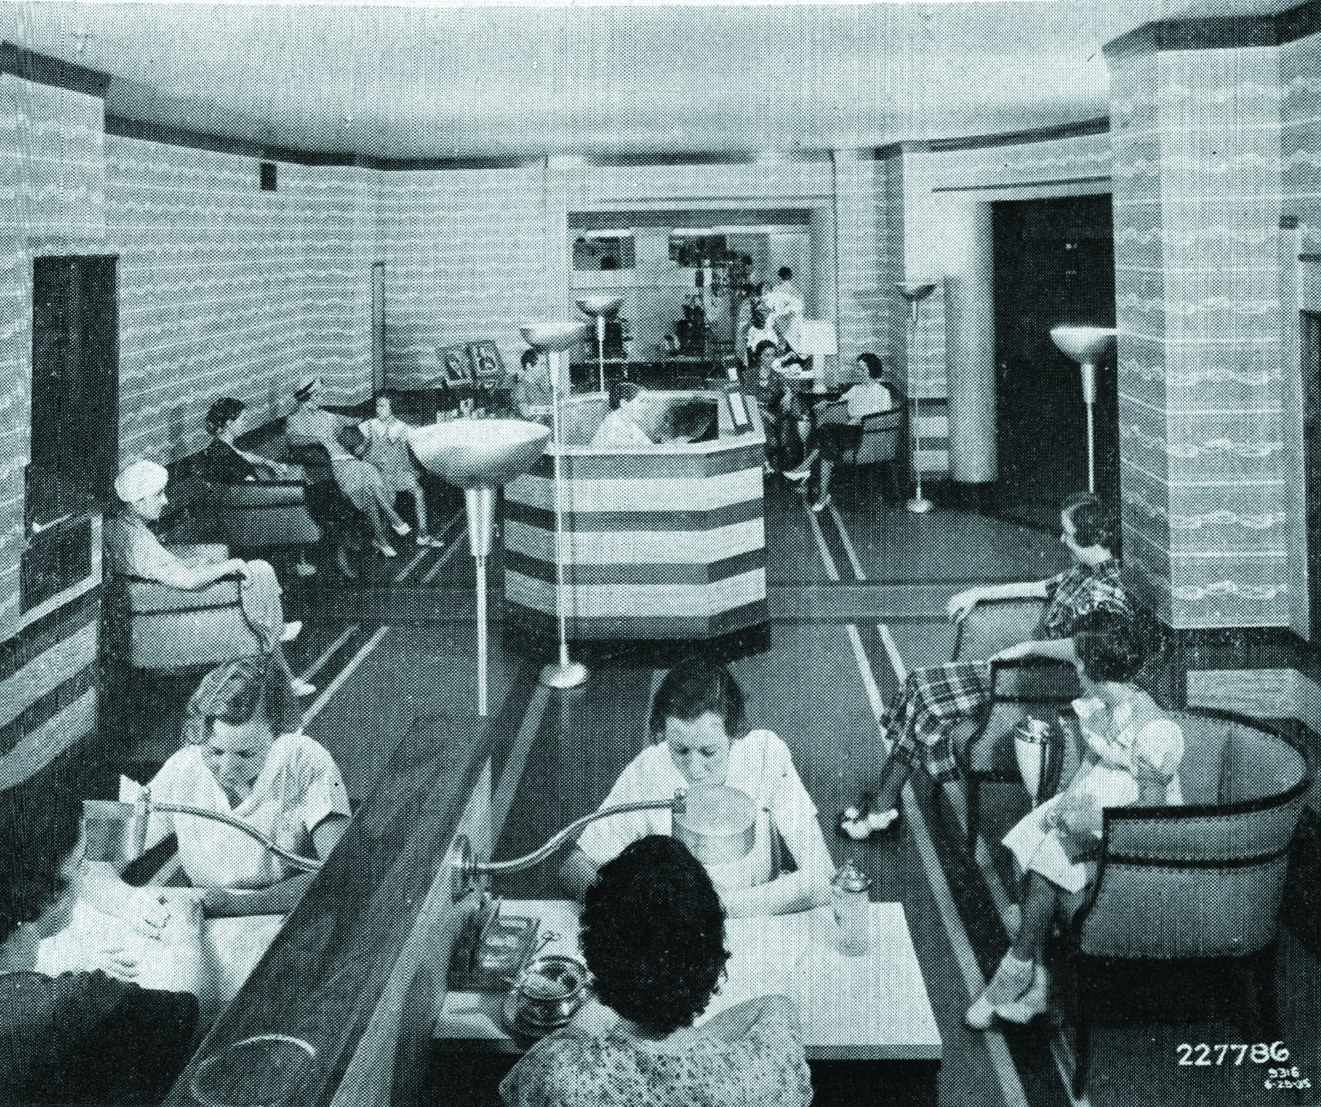 The Beauty Salon of Boggs and Buhl Department Store in Pittsburgh, PA grew its clientele with the help of an air conditioning system.